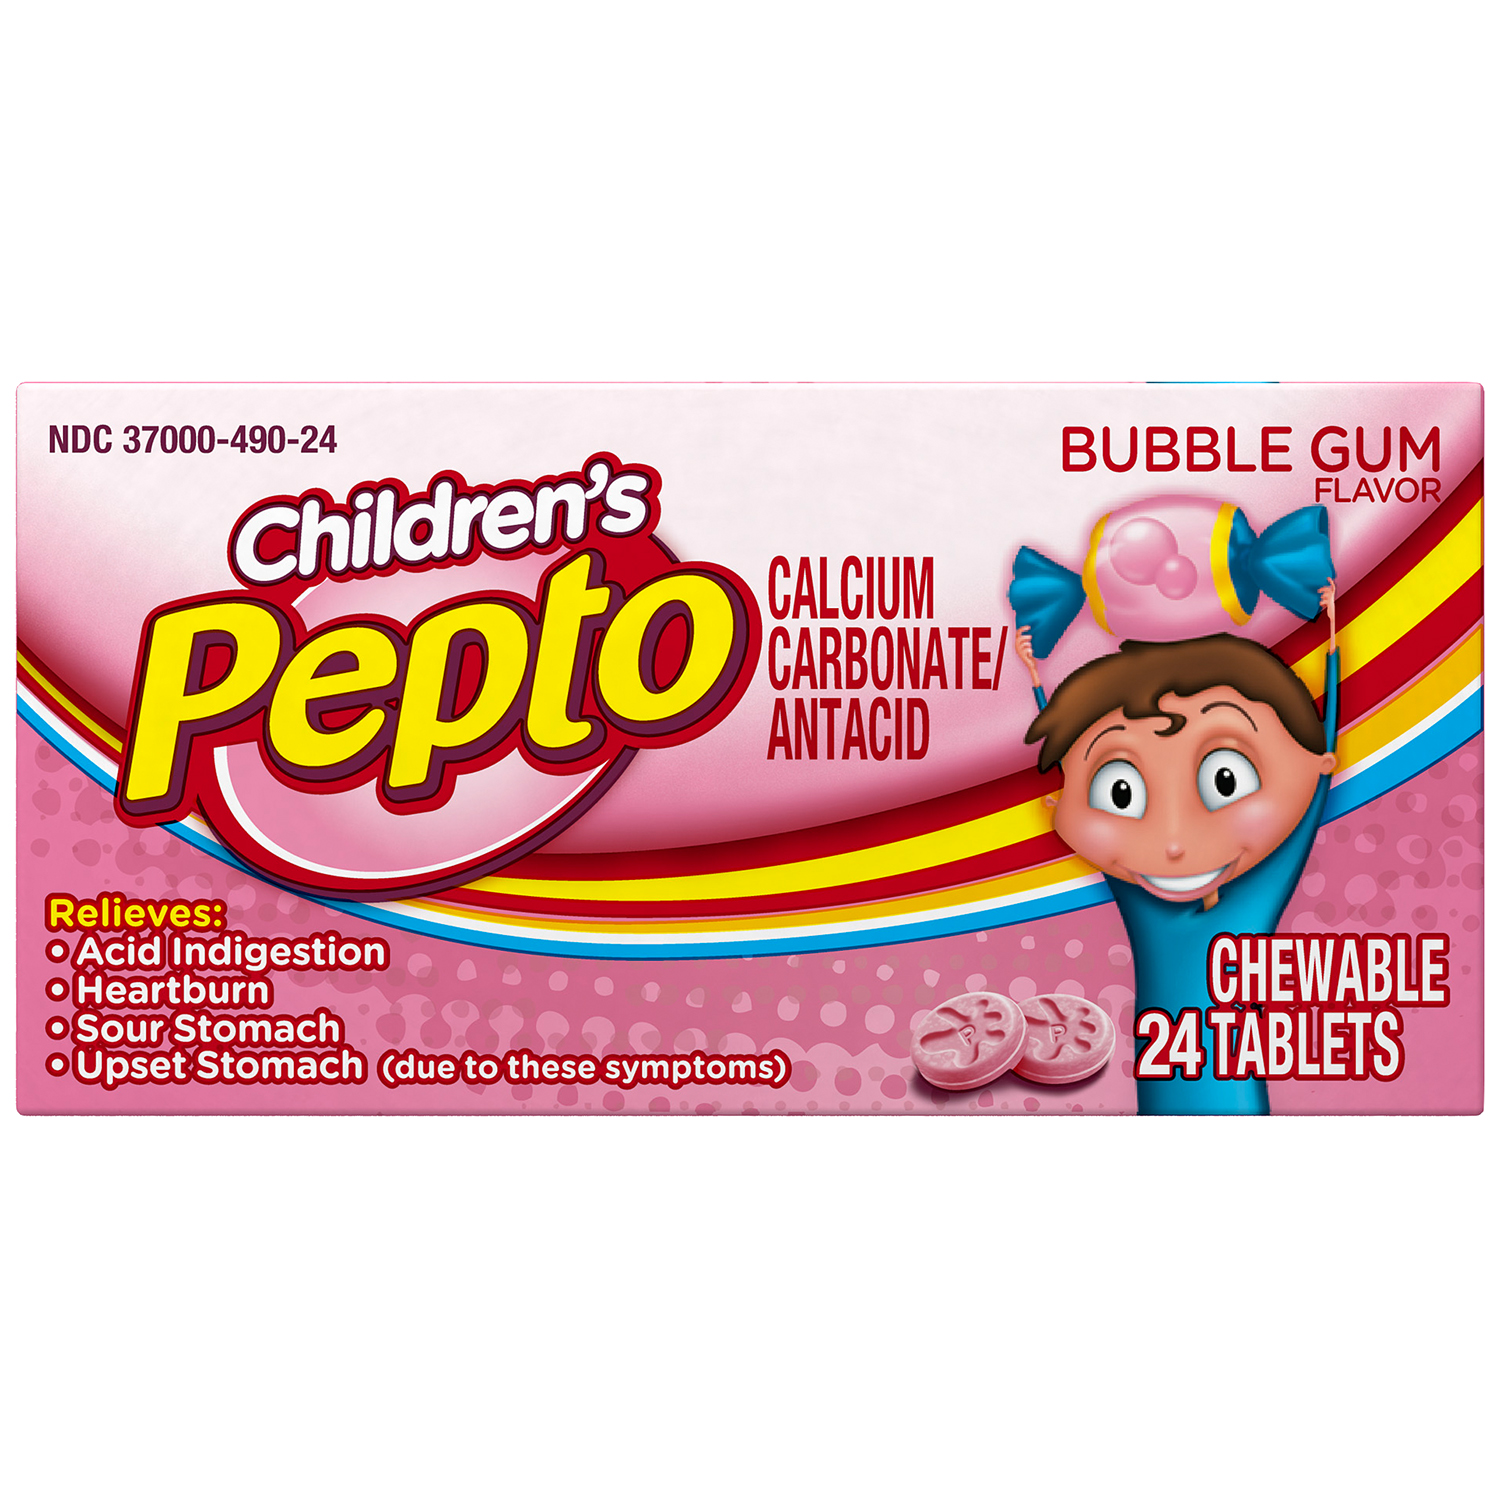 Children's Pepto Calcium Carbonate Antacid